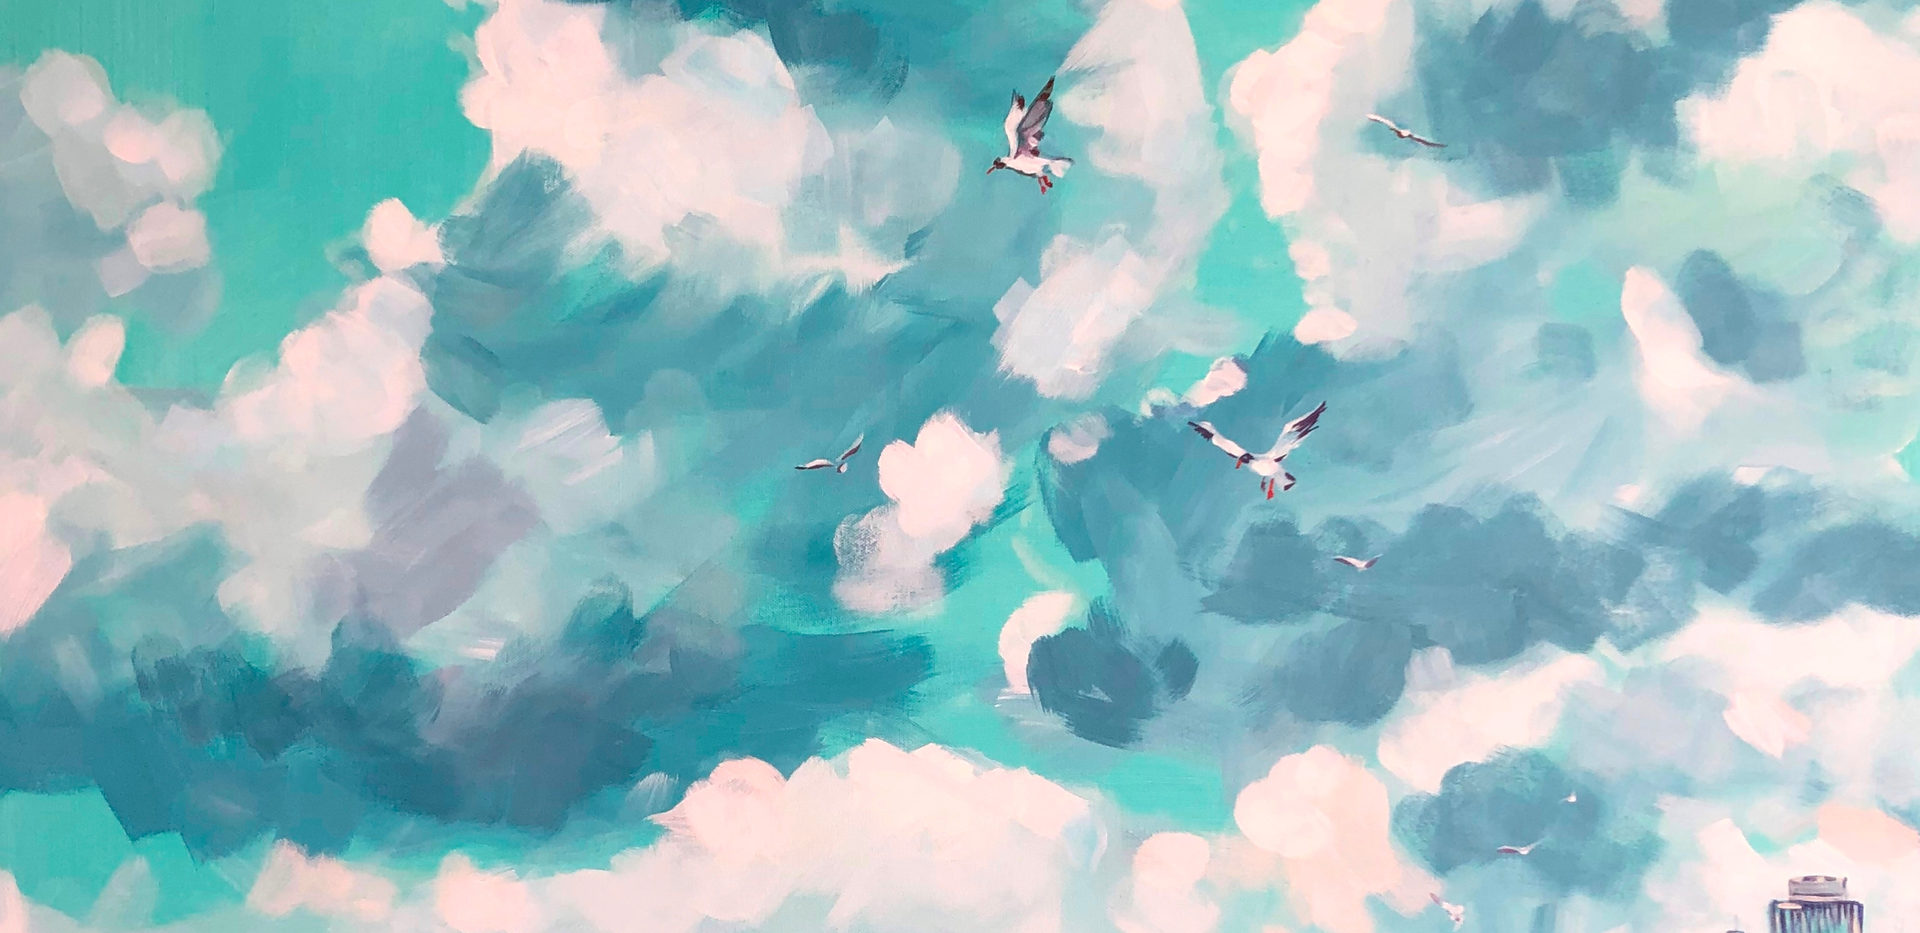 The Higher Skies